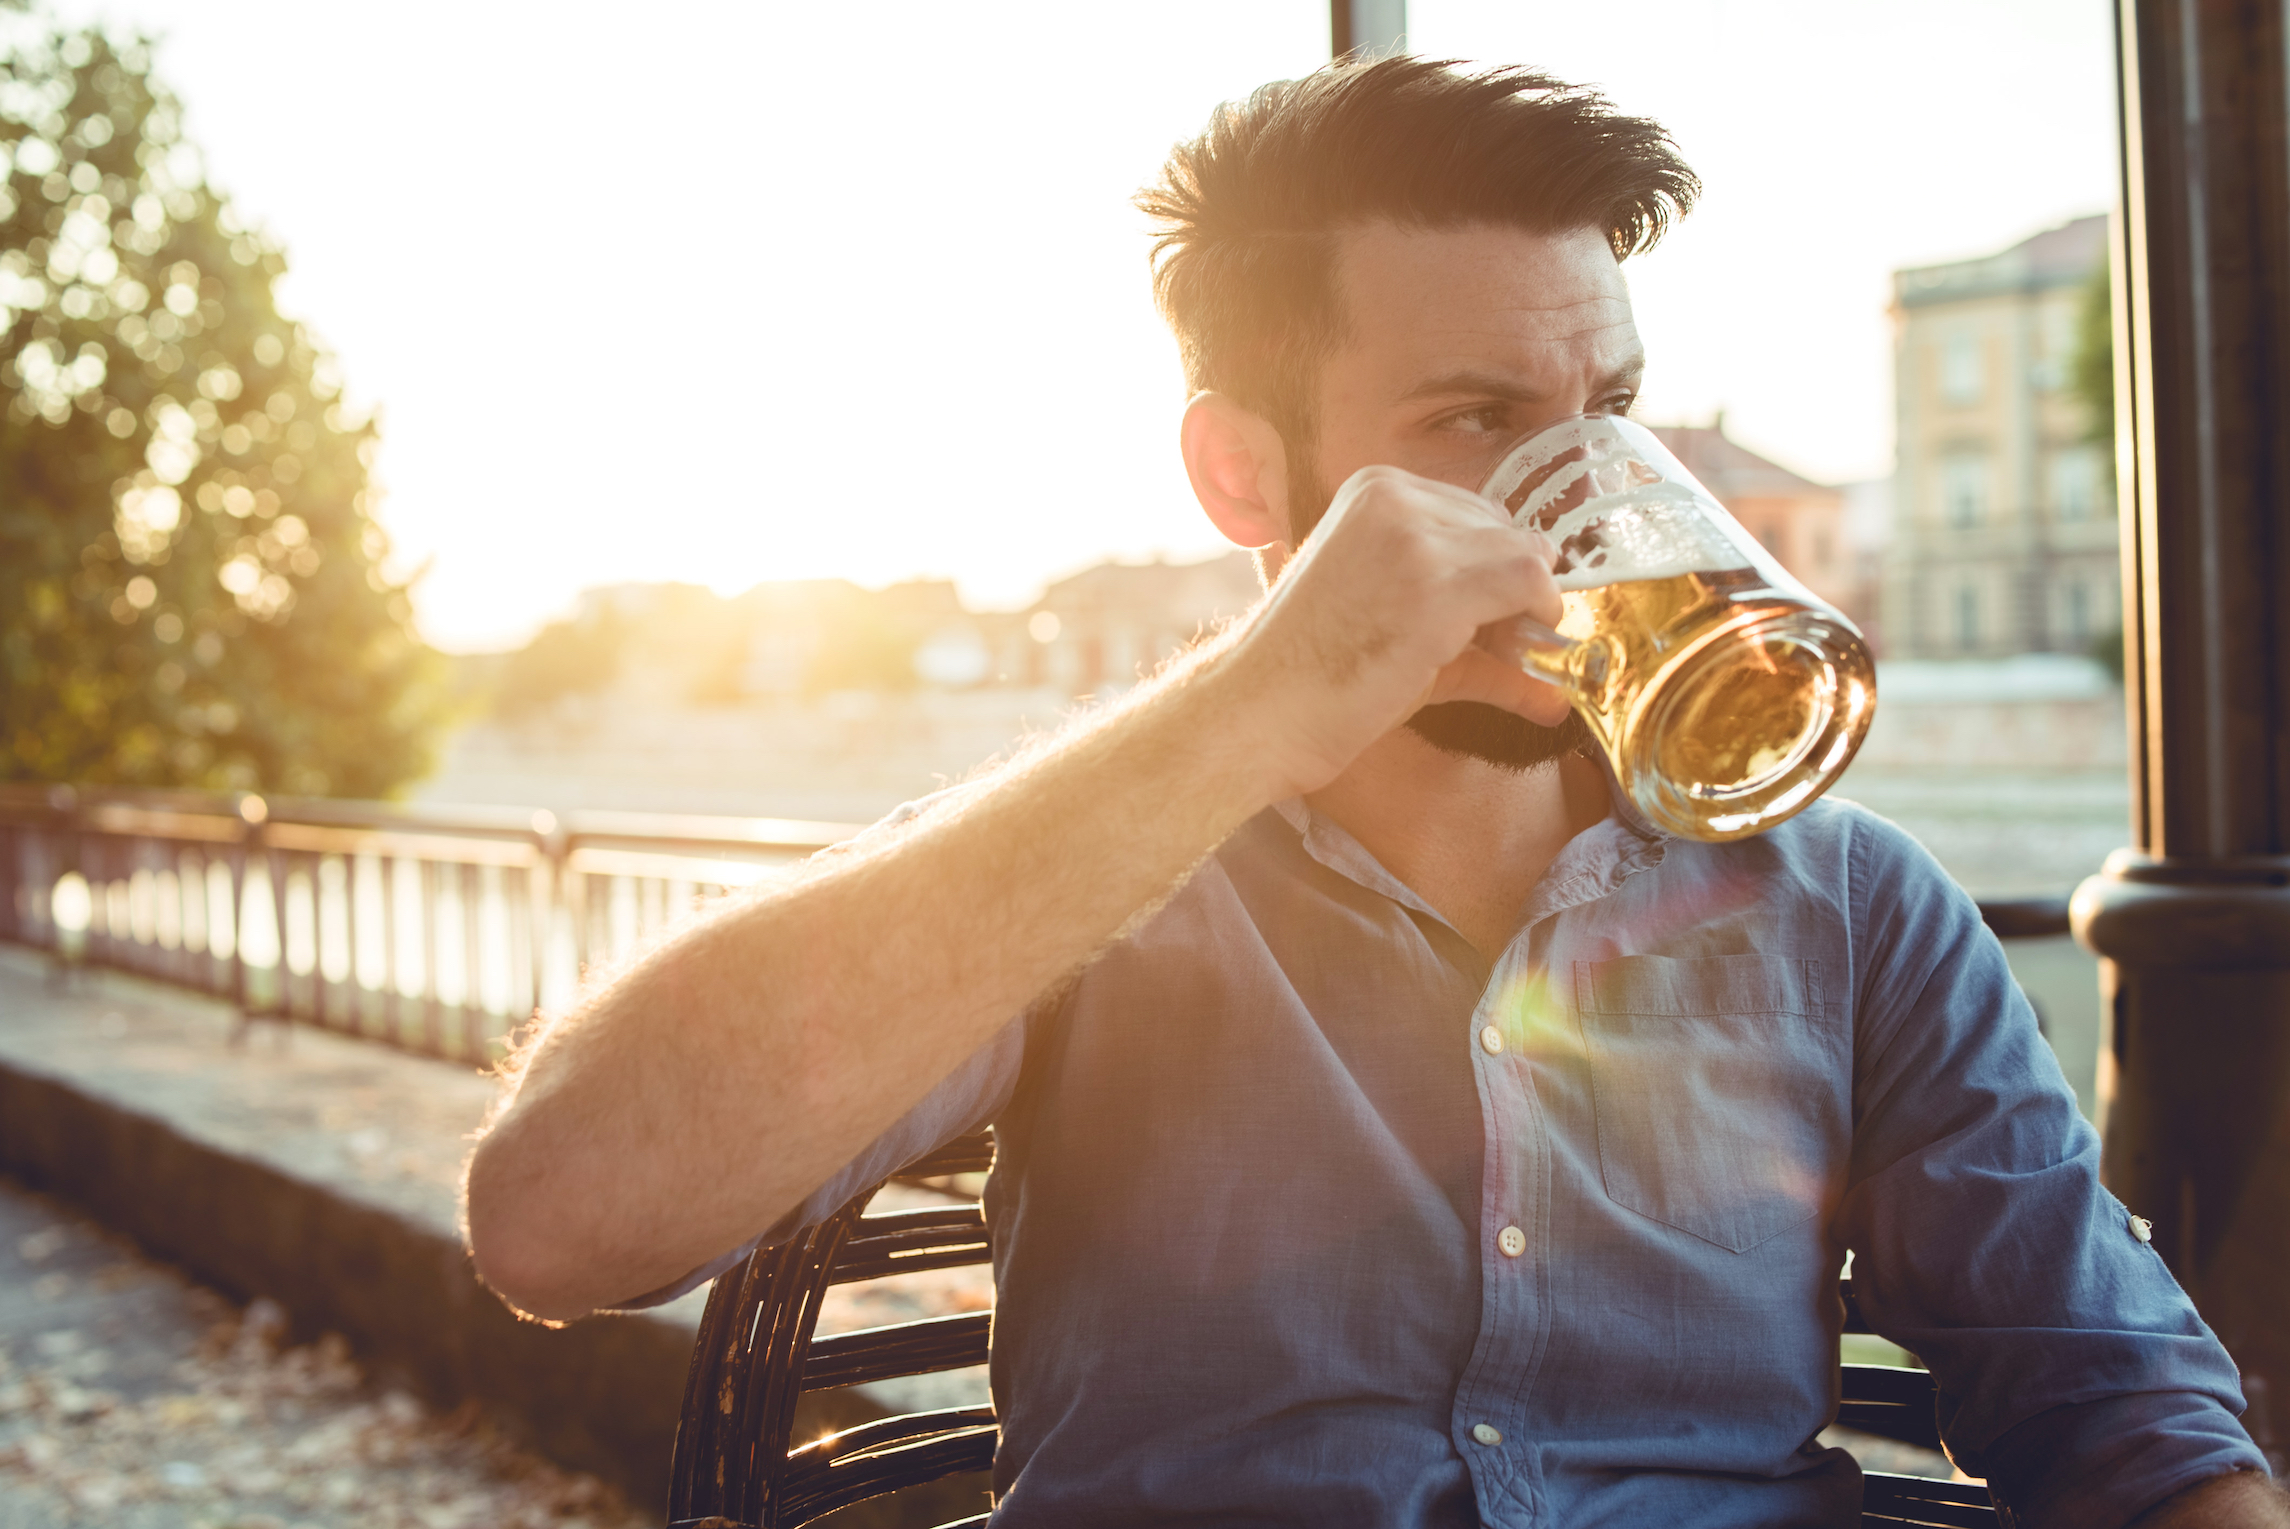 A recent study has found that men may have a more difficult time than women when trying to kick the habit of drinking.